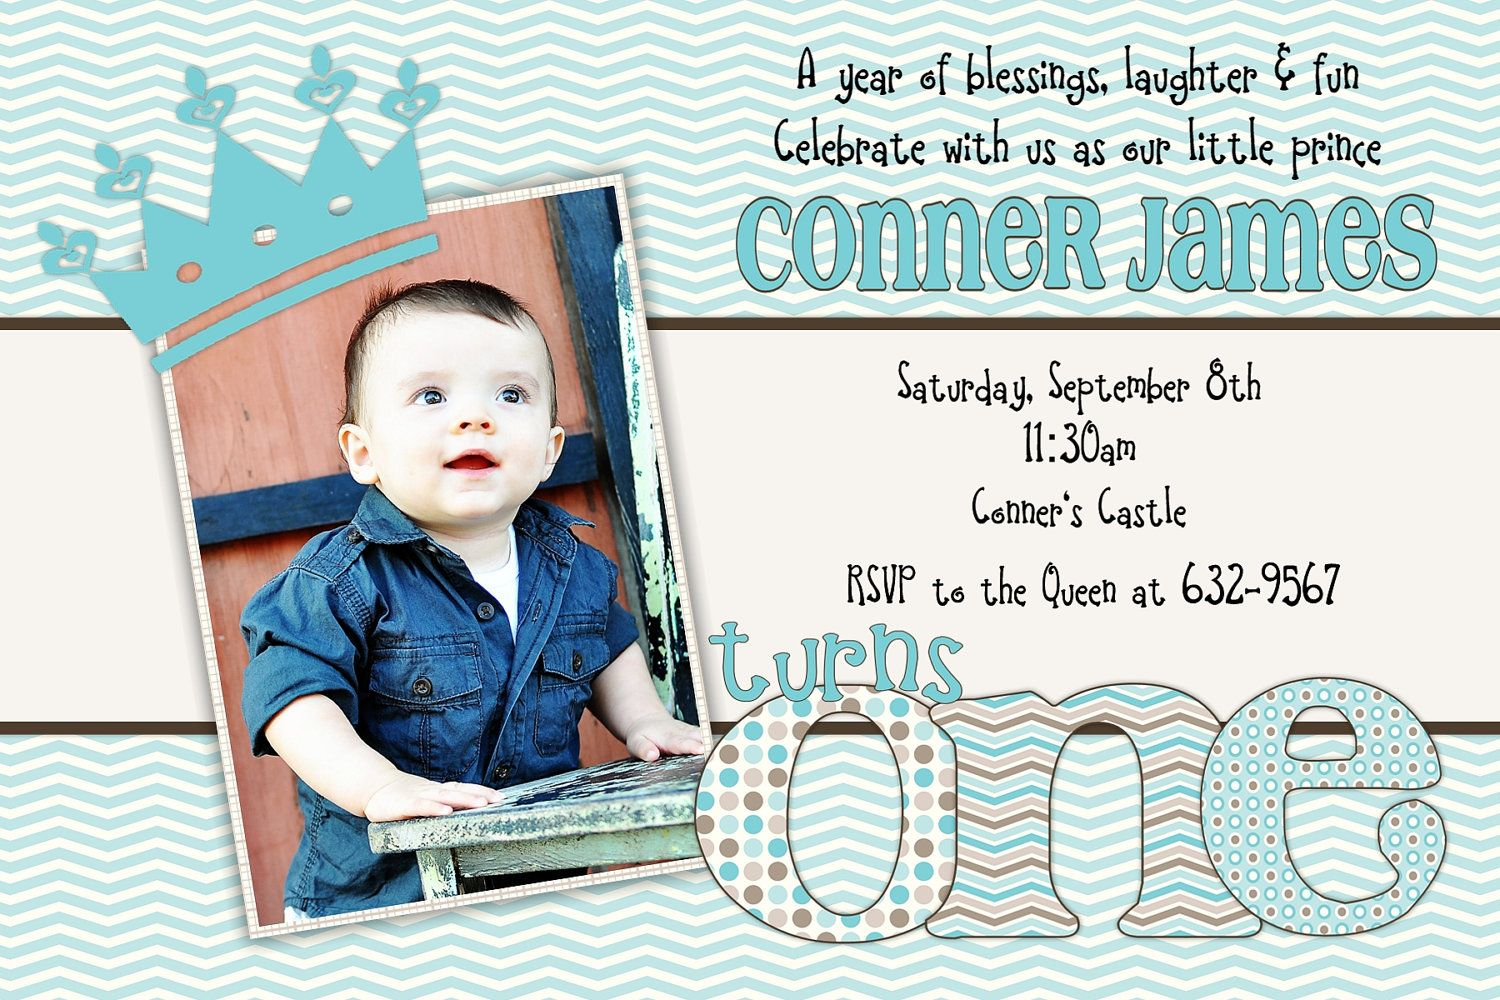 Little prince birthday invitation by beenesprout on etsy 1250 little prince birthday invitation by beenesprout on etsy 1250 baby boy first stopboris Image collections